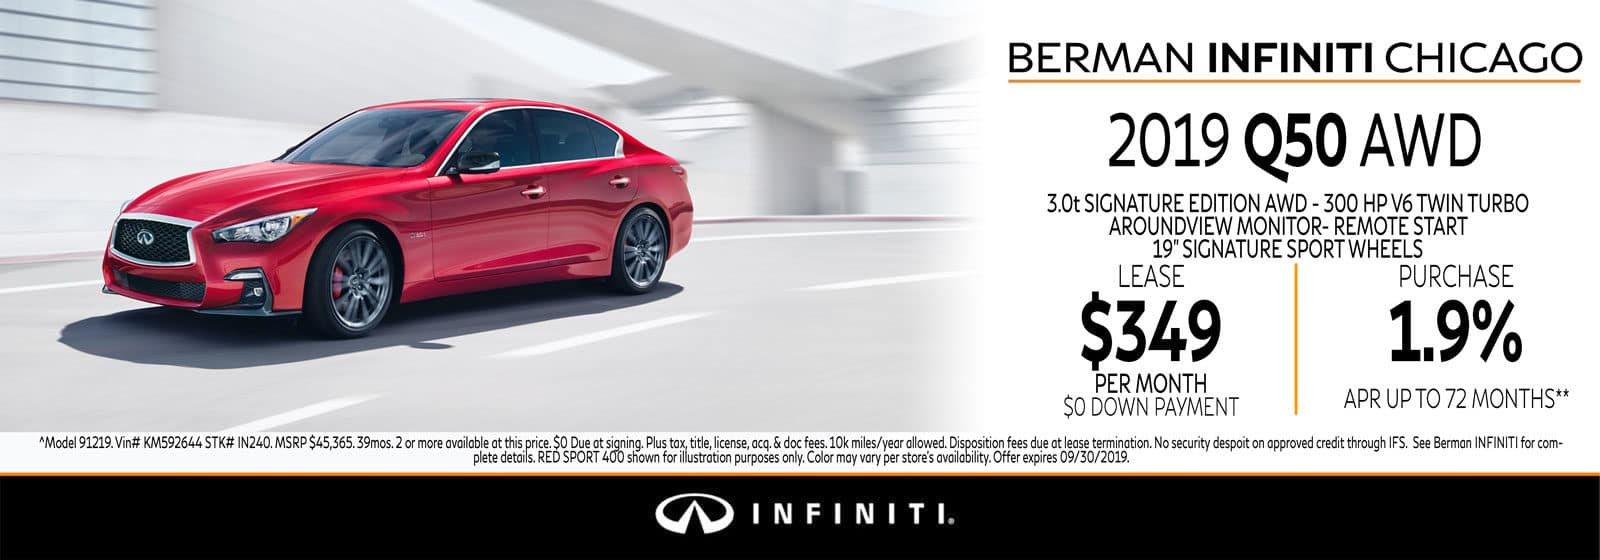 New 2019 INFINITI Q50 September offer at Berman INFINITI Chicago!